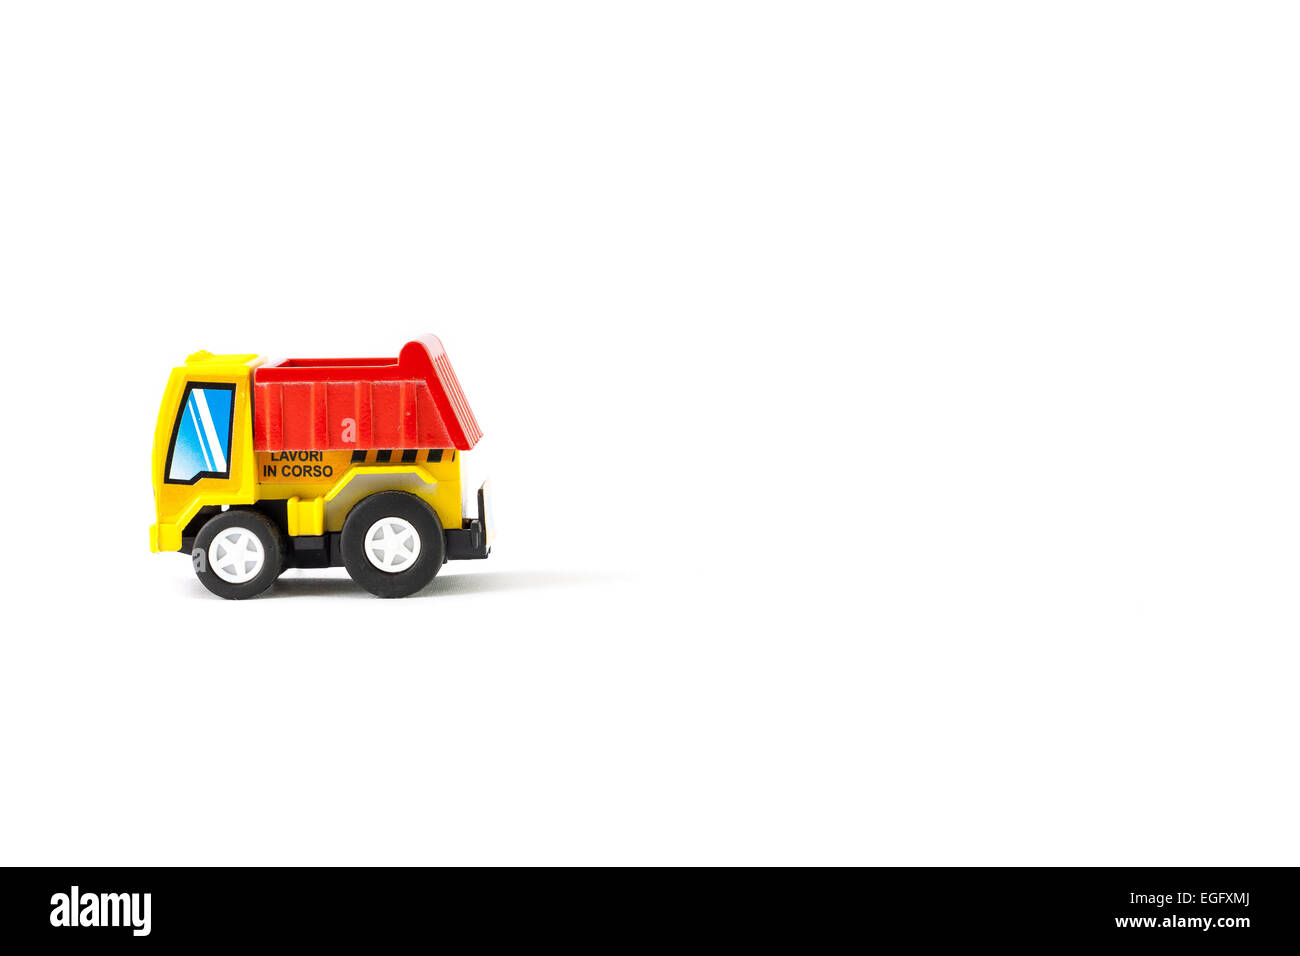 Earth moving toy. Yellow and red truck. - Stock Image